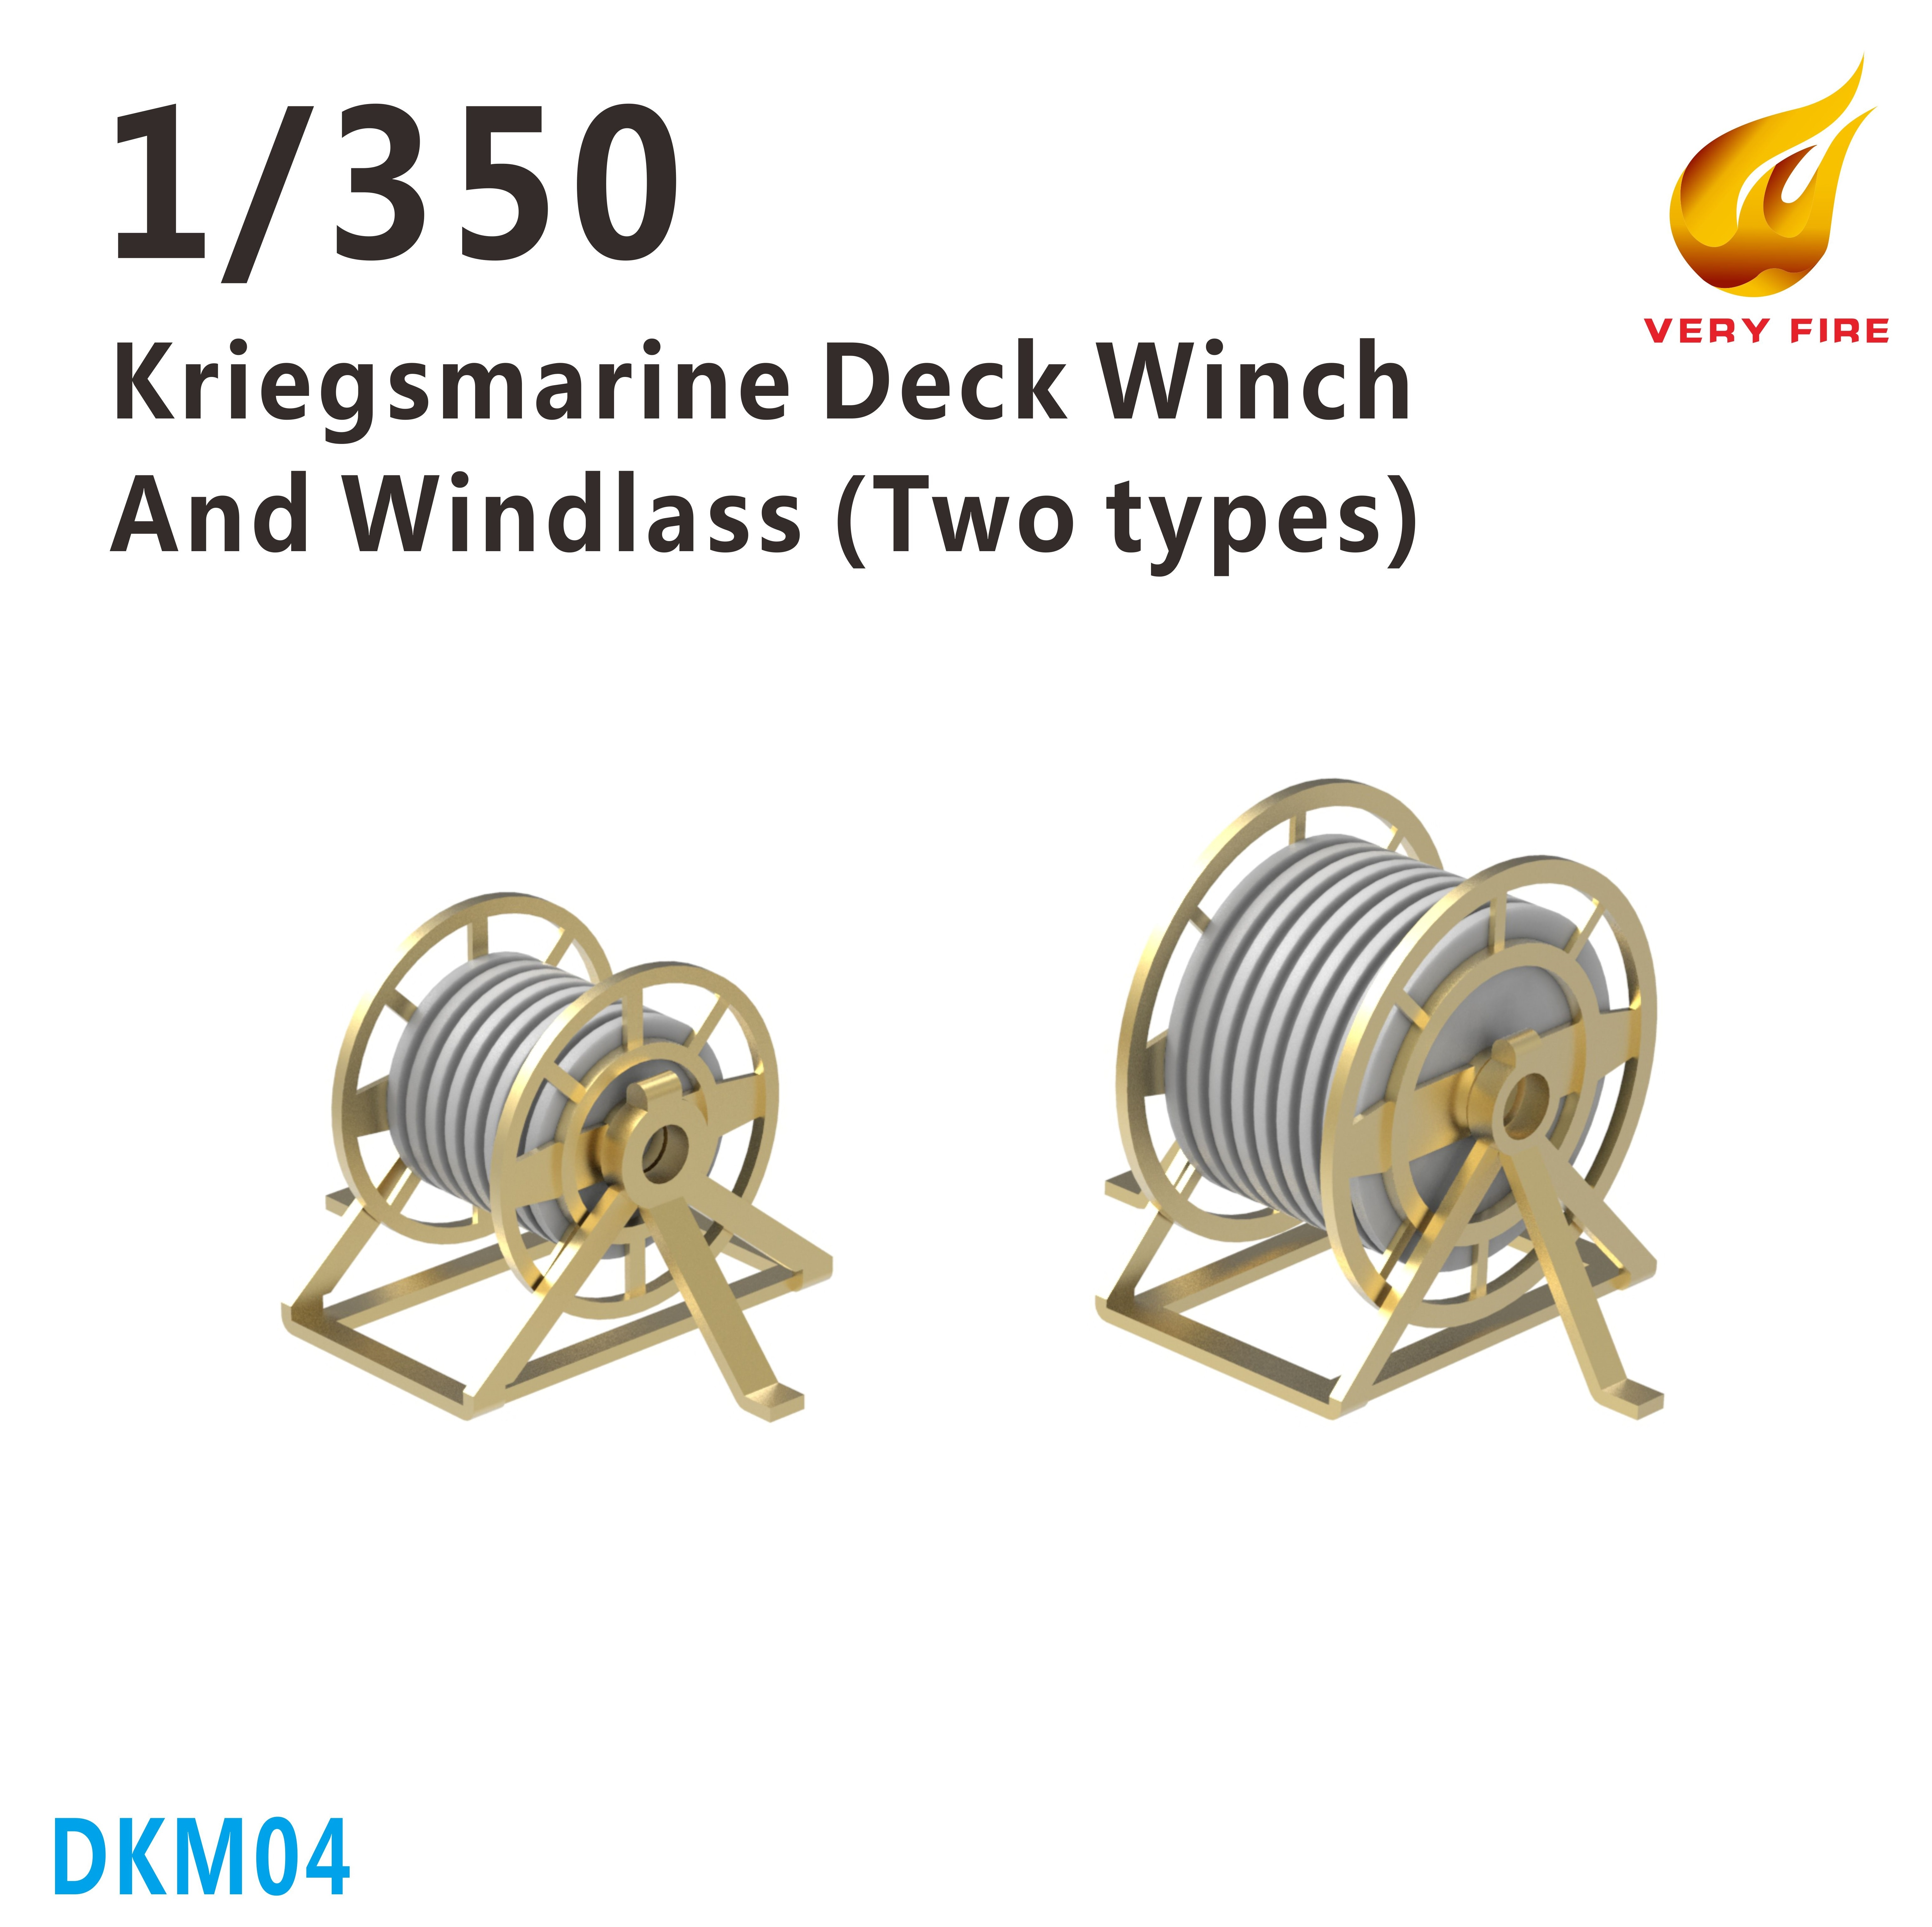 Very Fire 1/350 DKM Kriegsmarine Deck Winch and Windlass (2 Types, 22 Sets)